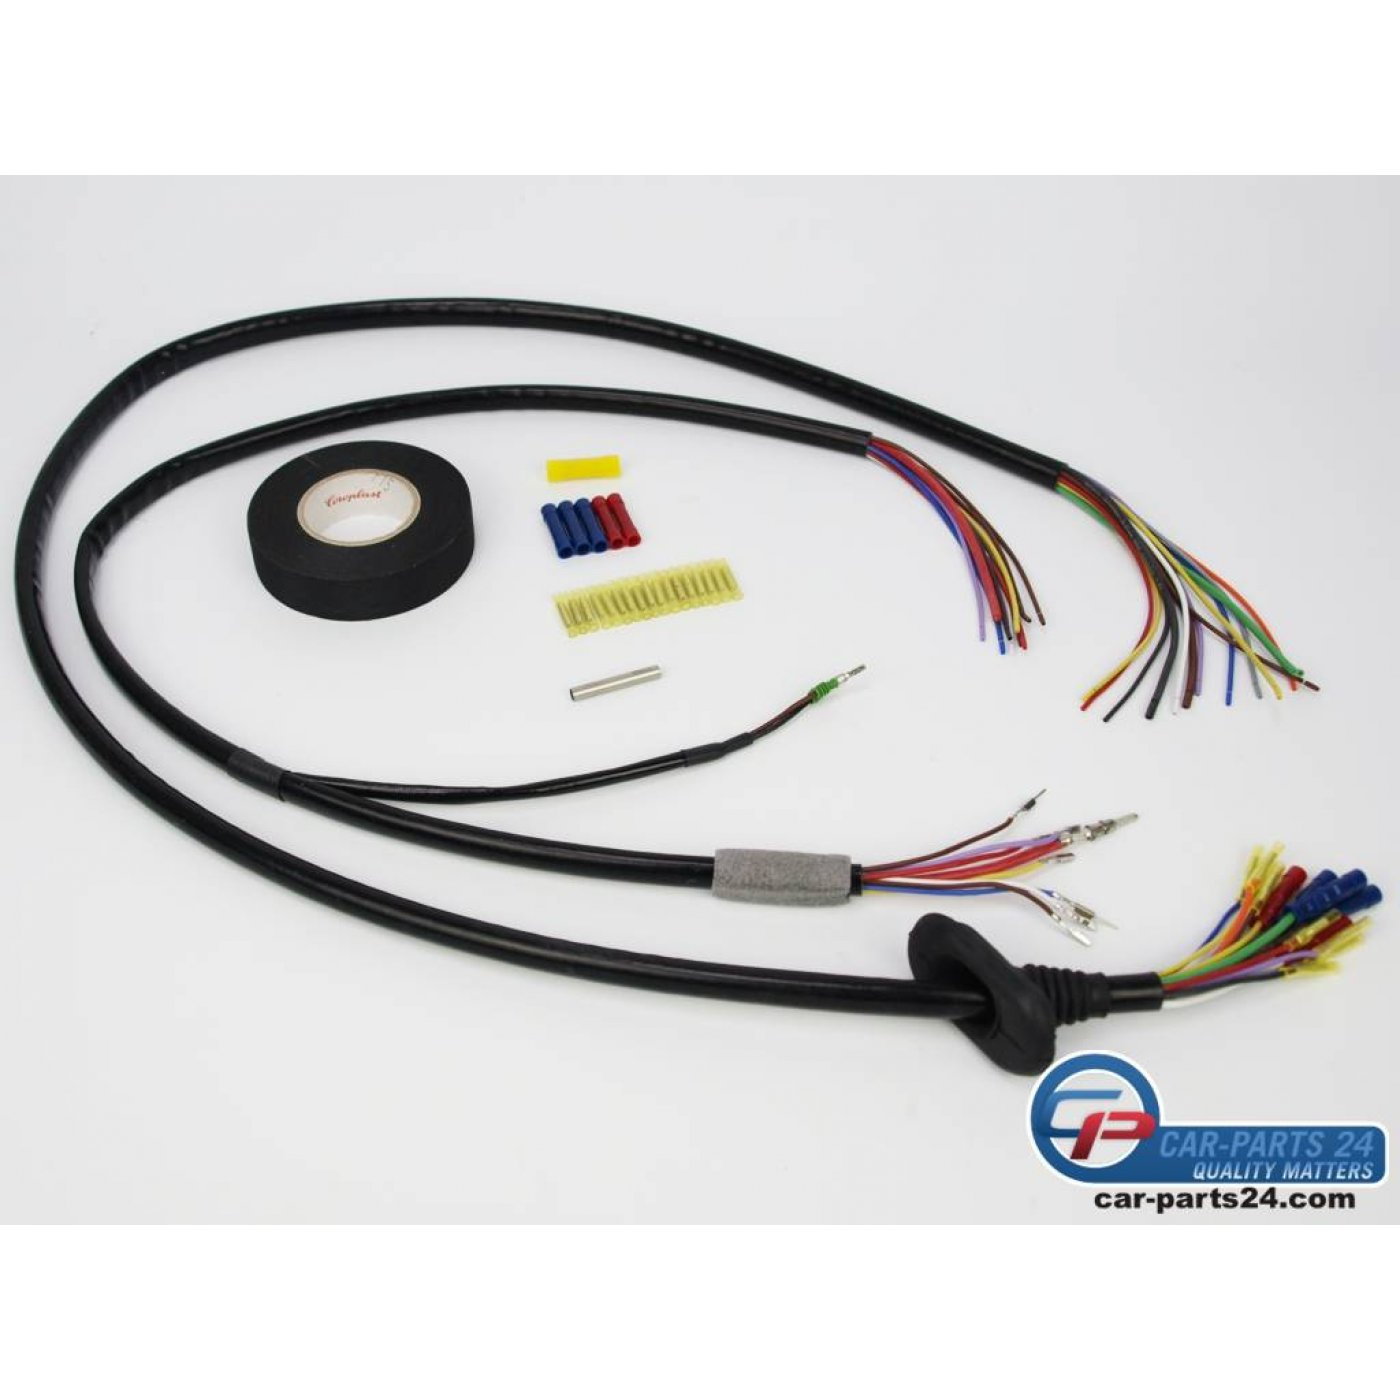 hight resolution of repair wiring harness tailgate right side for bmw e61